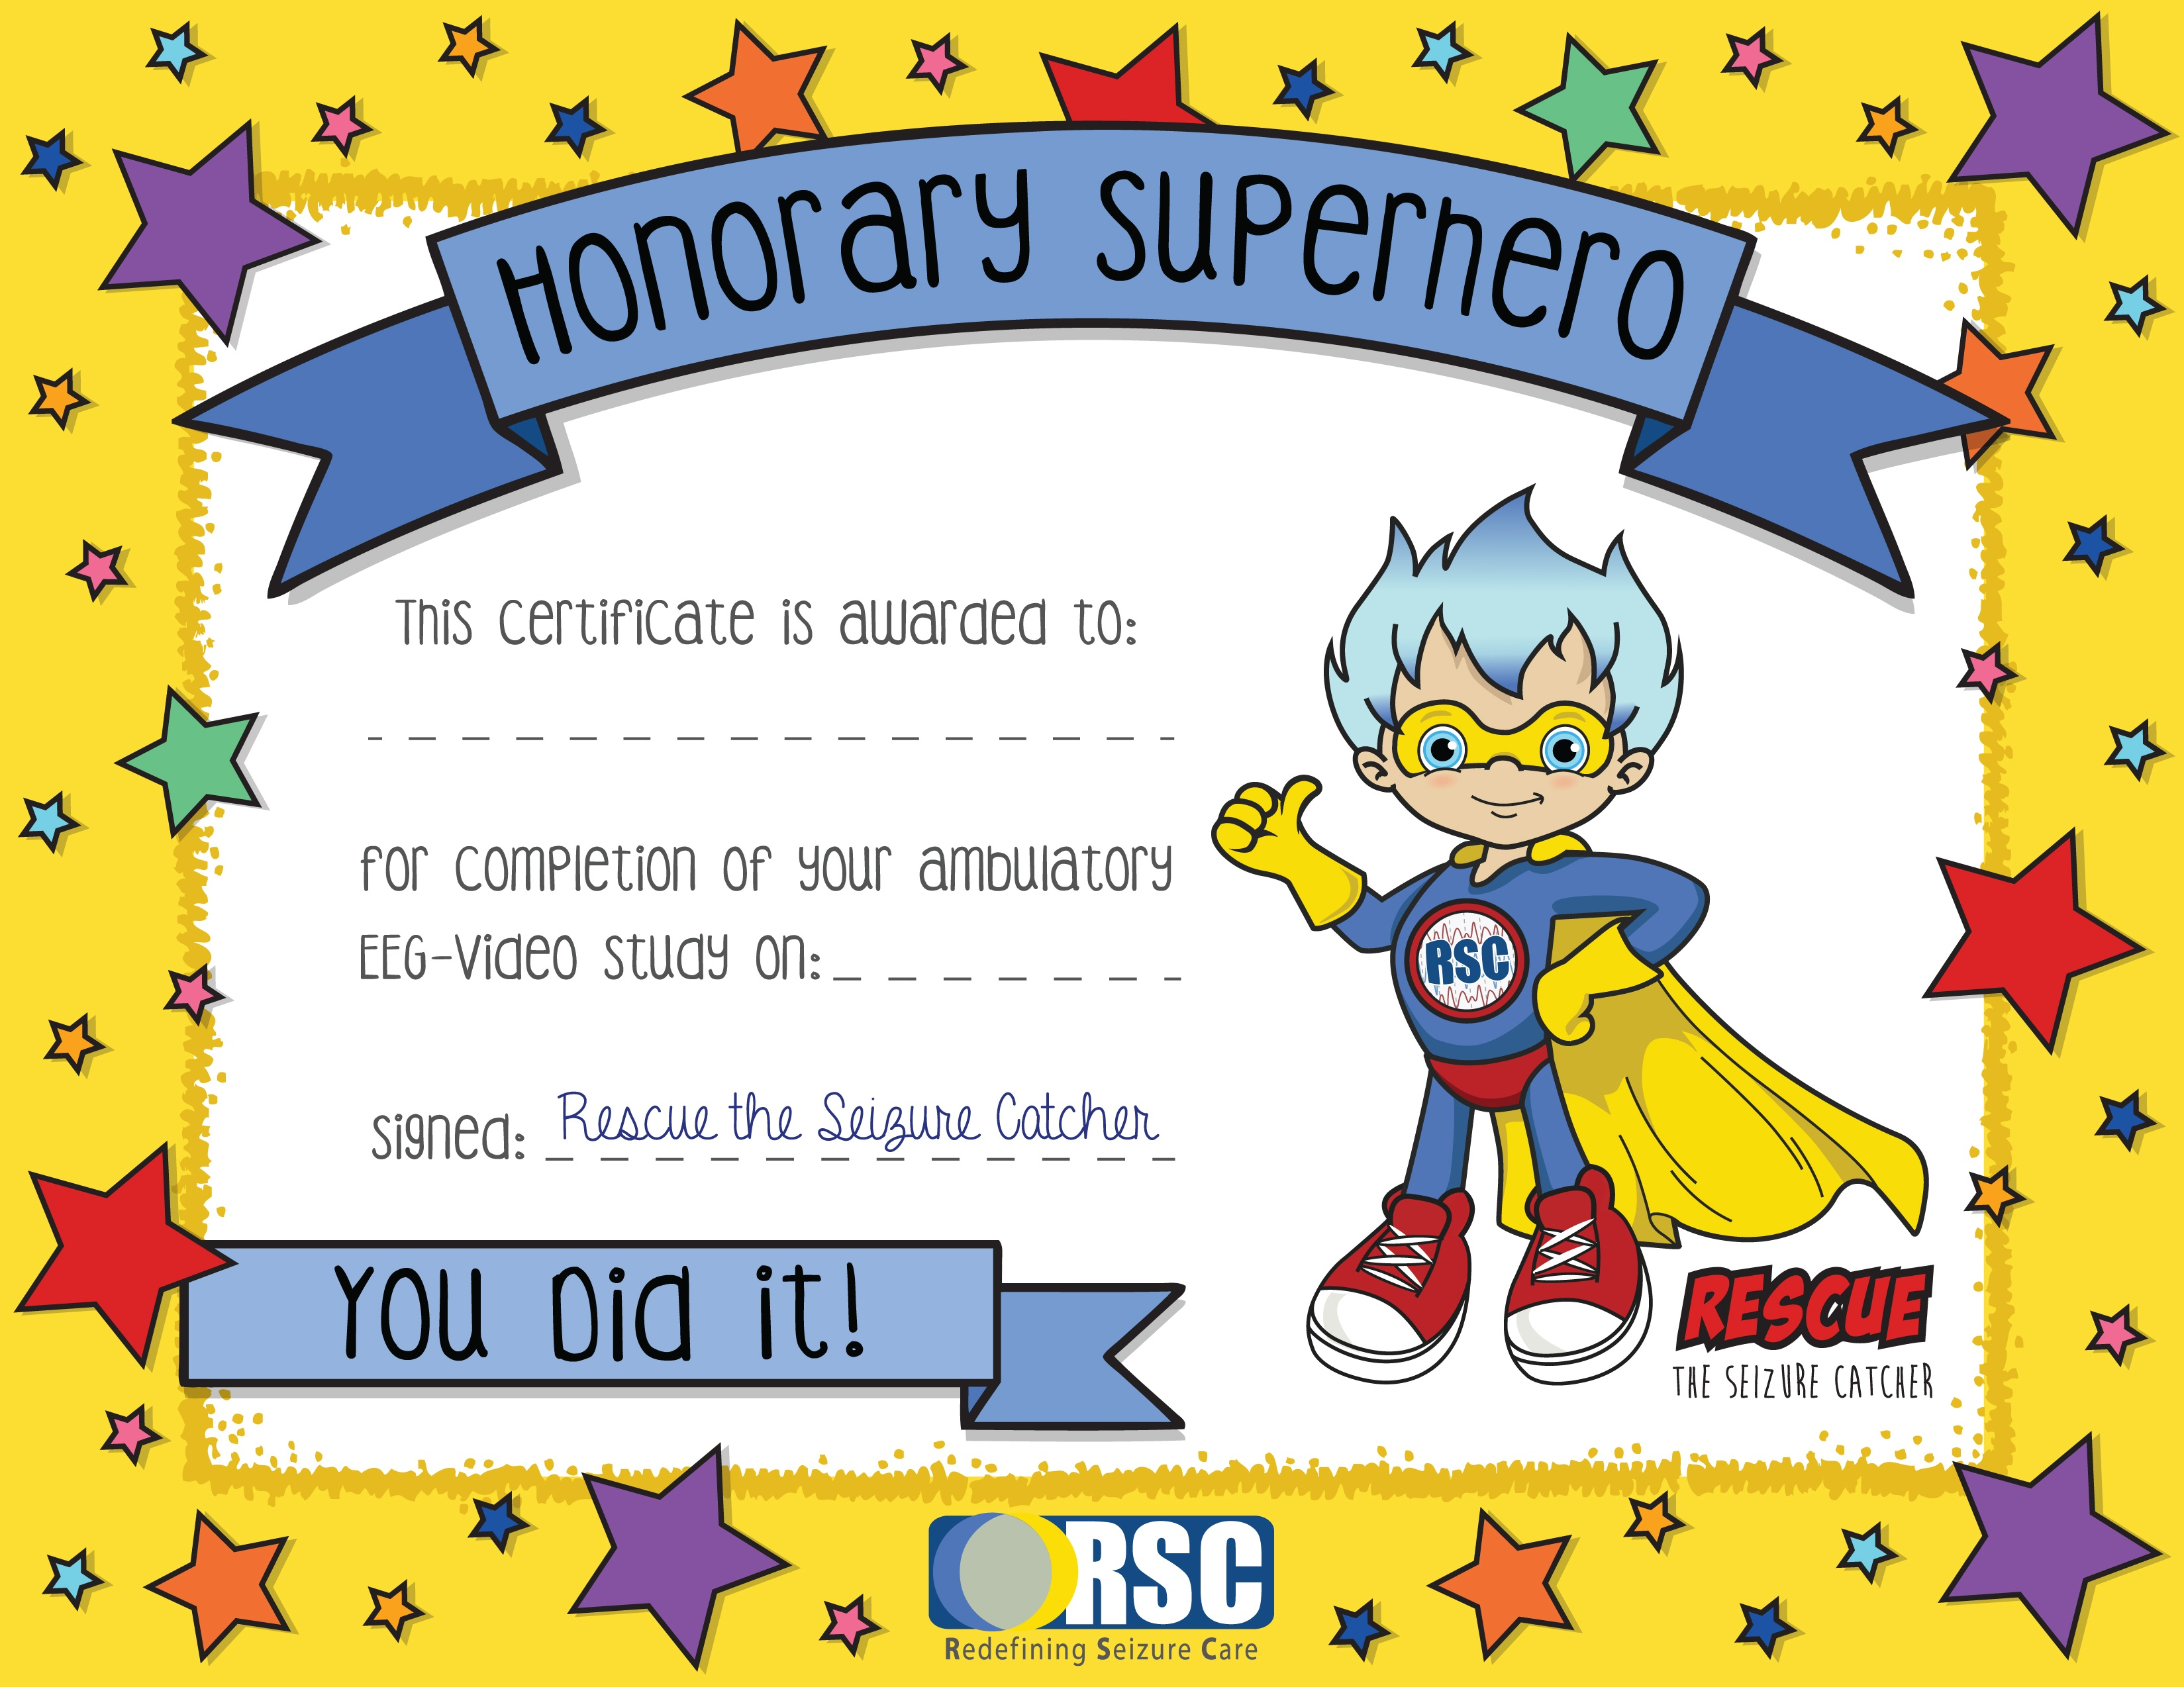 Rescue_Honorary_Superhero_Certificate_Final.jpg